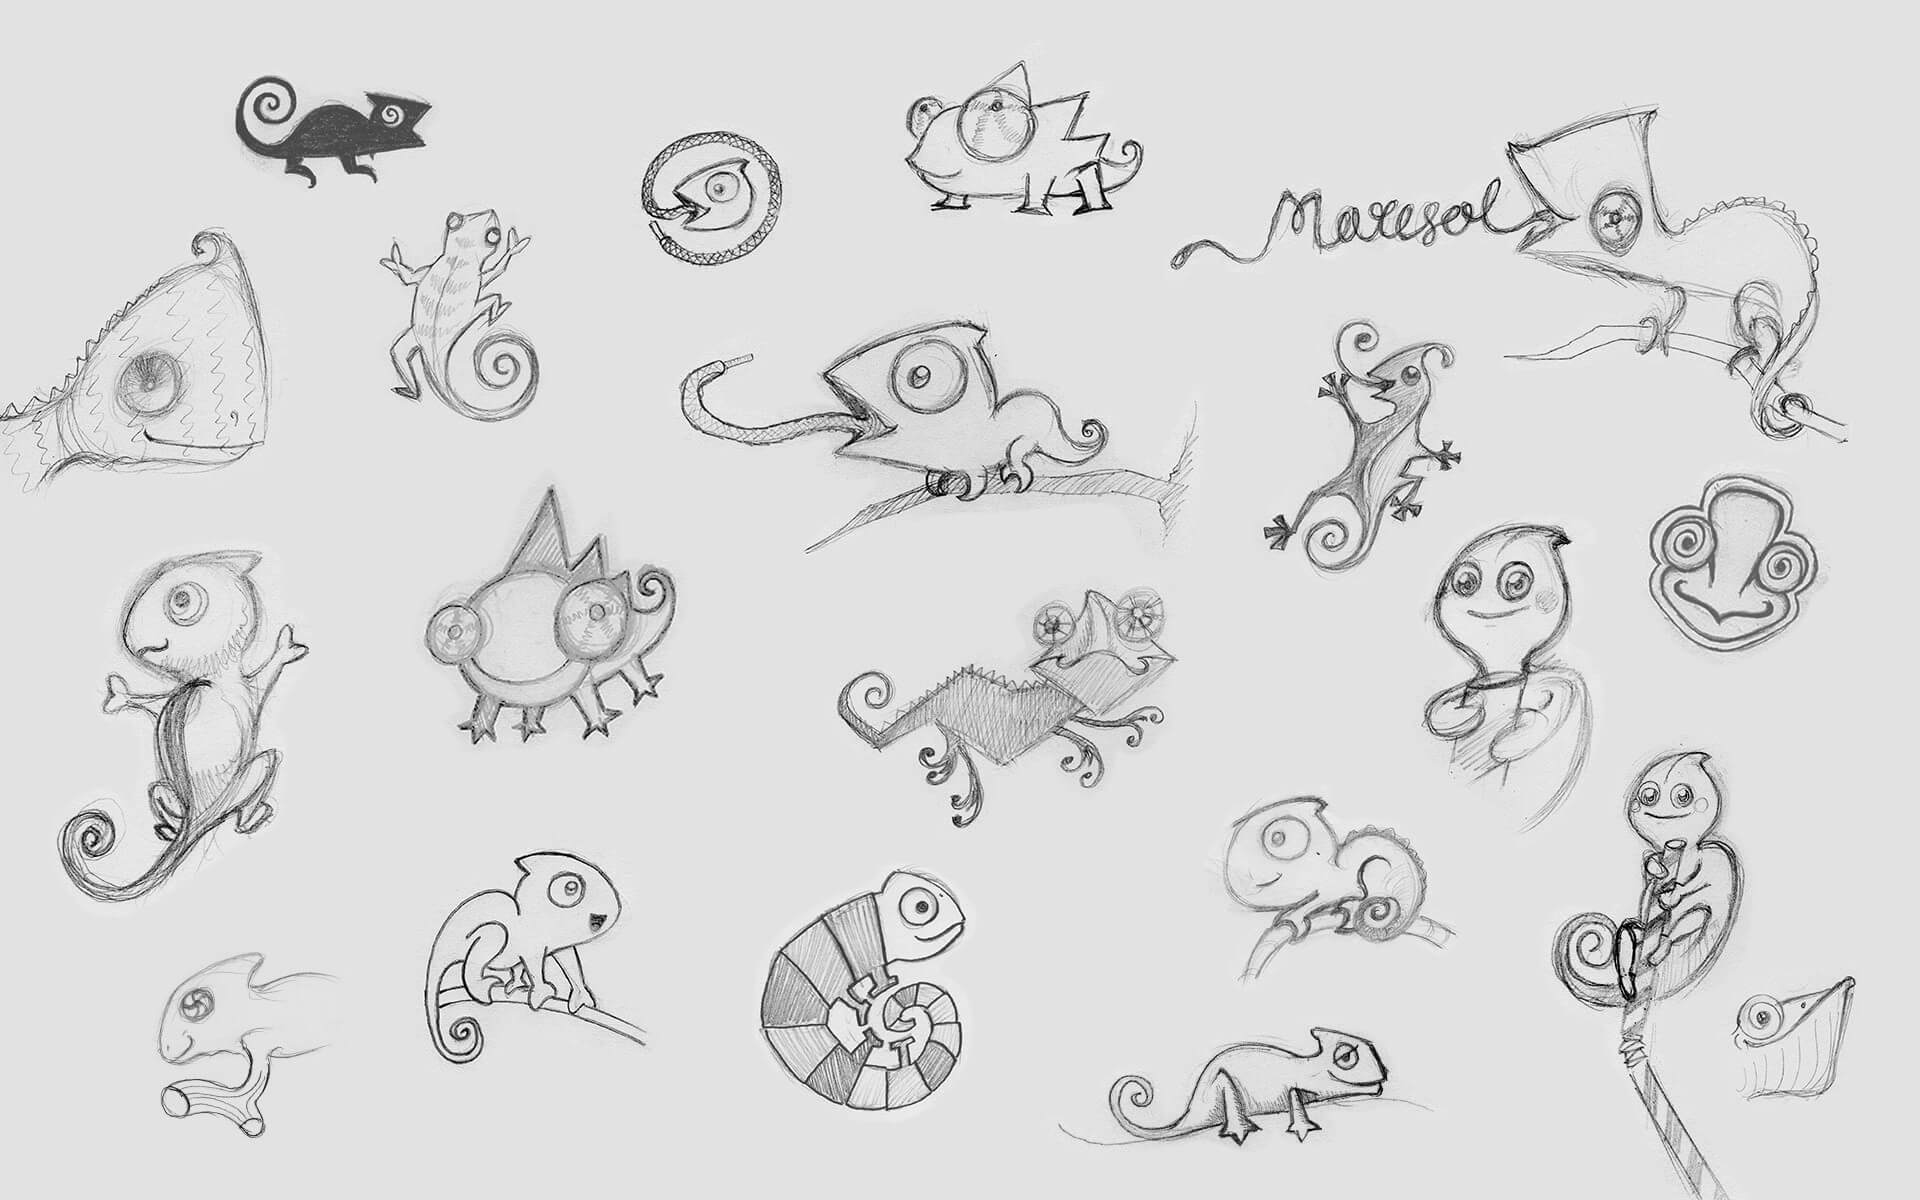 01 initial sketches